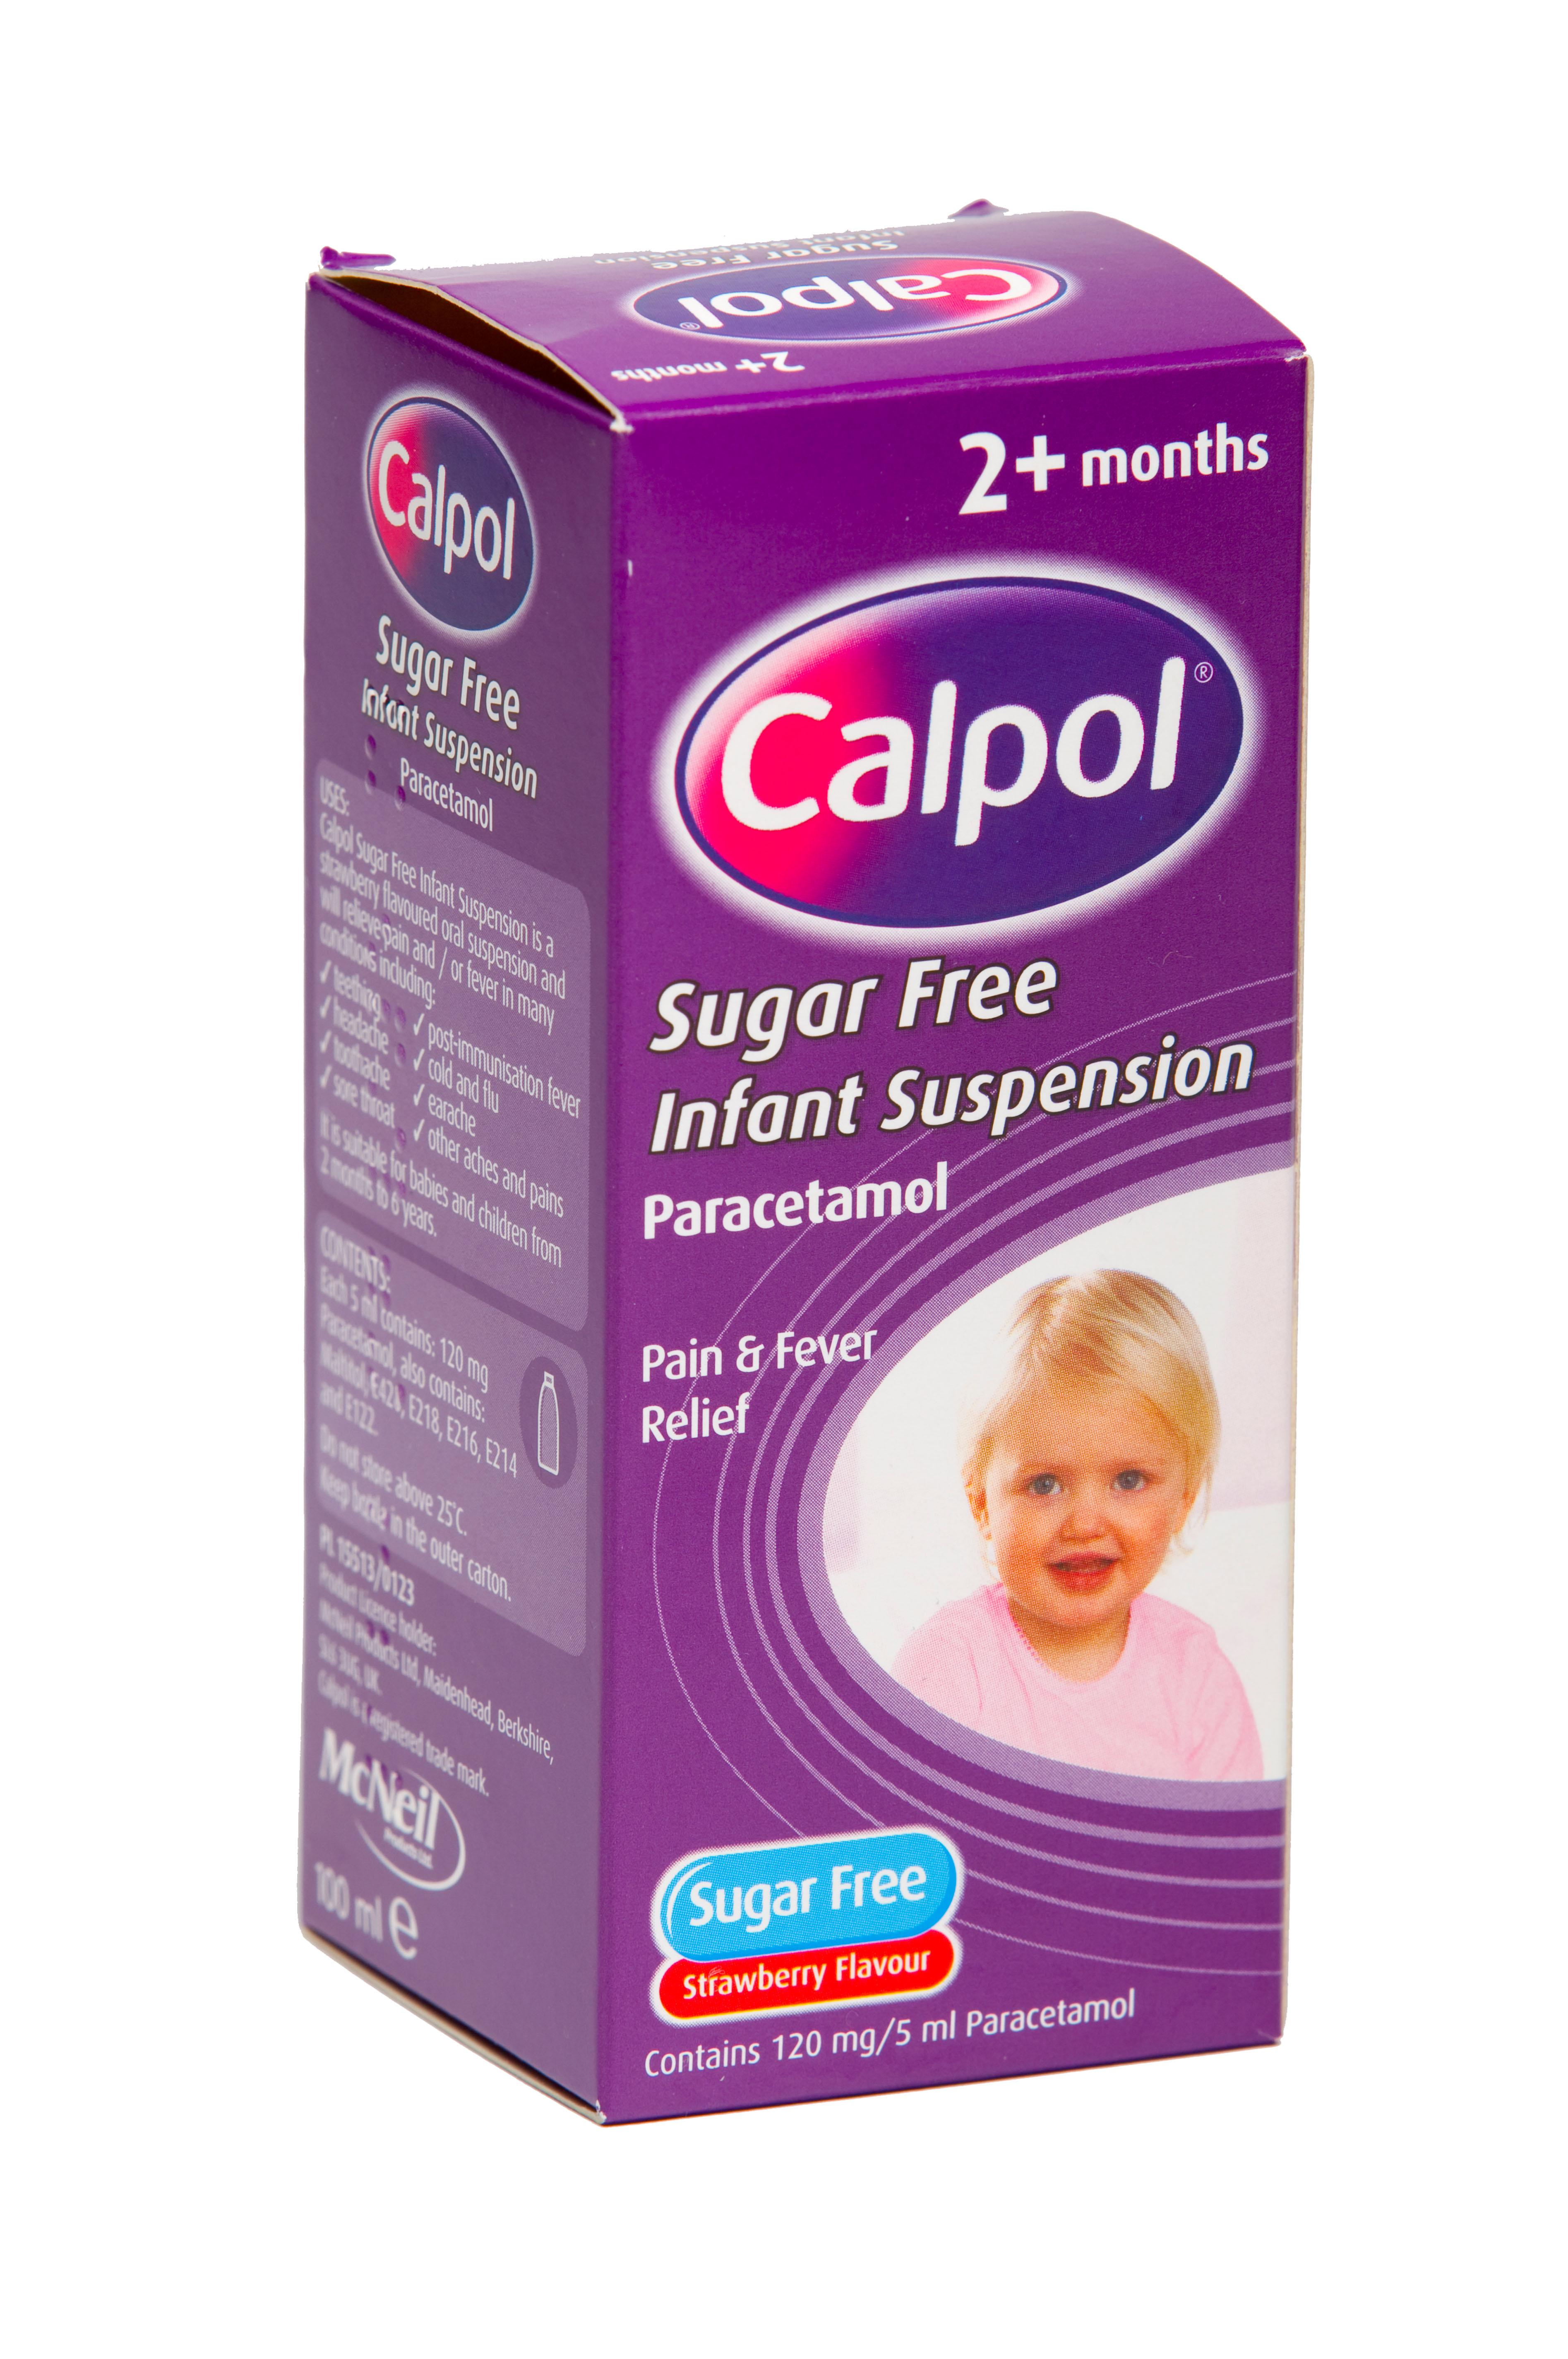 Newborn Infant With Fever How Long Does Calpol Take To Work Does It Make Babies